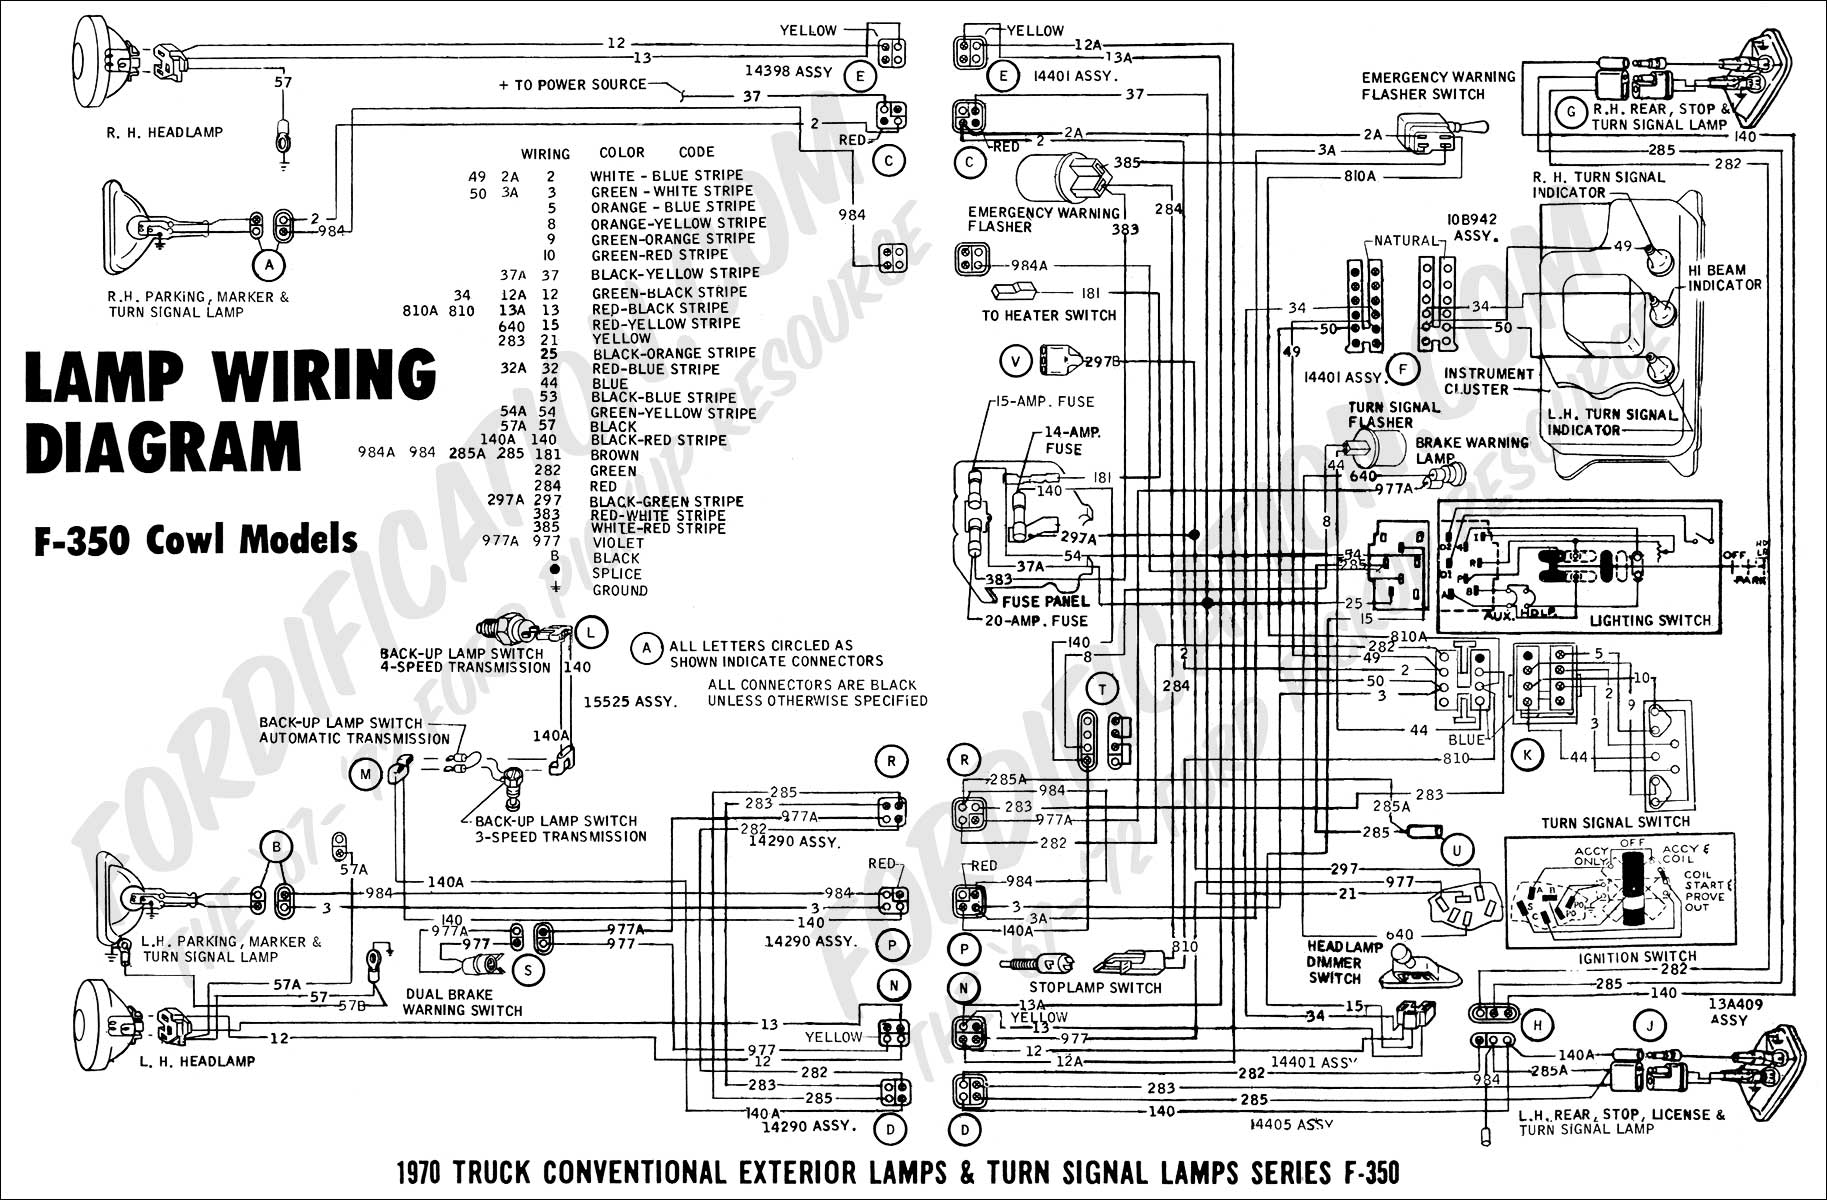 1972 Ford F 250 Wiring Harness Diagram Wiring Diagram Report1 Report1 Maceratadoc It